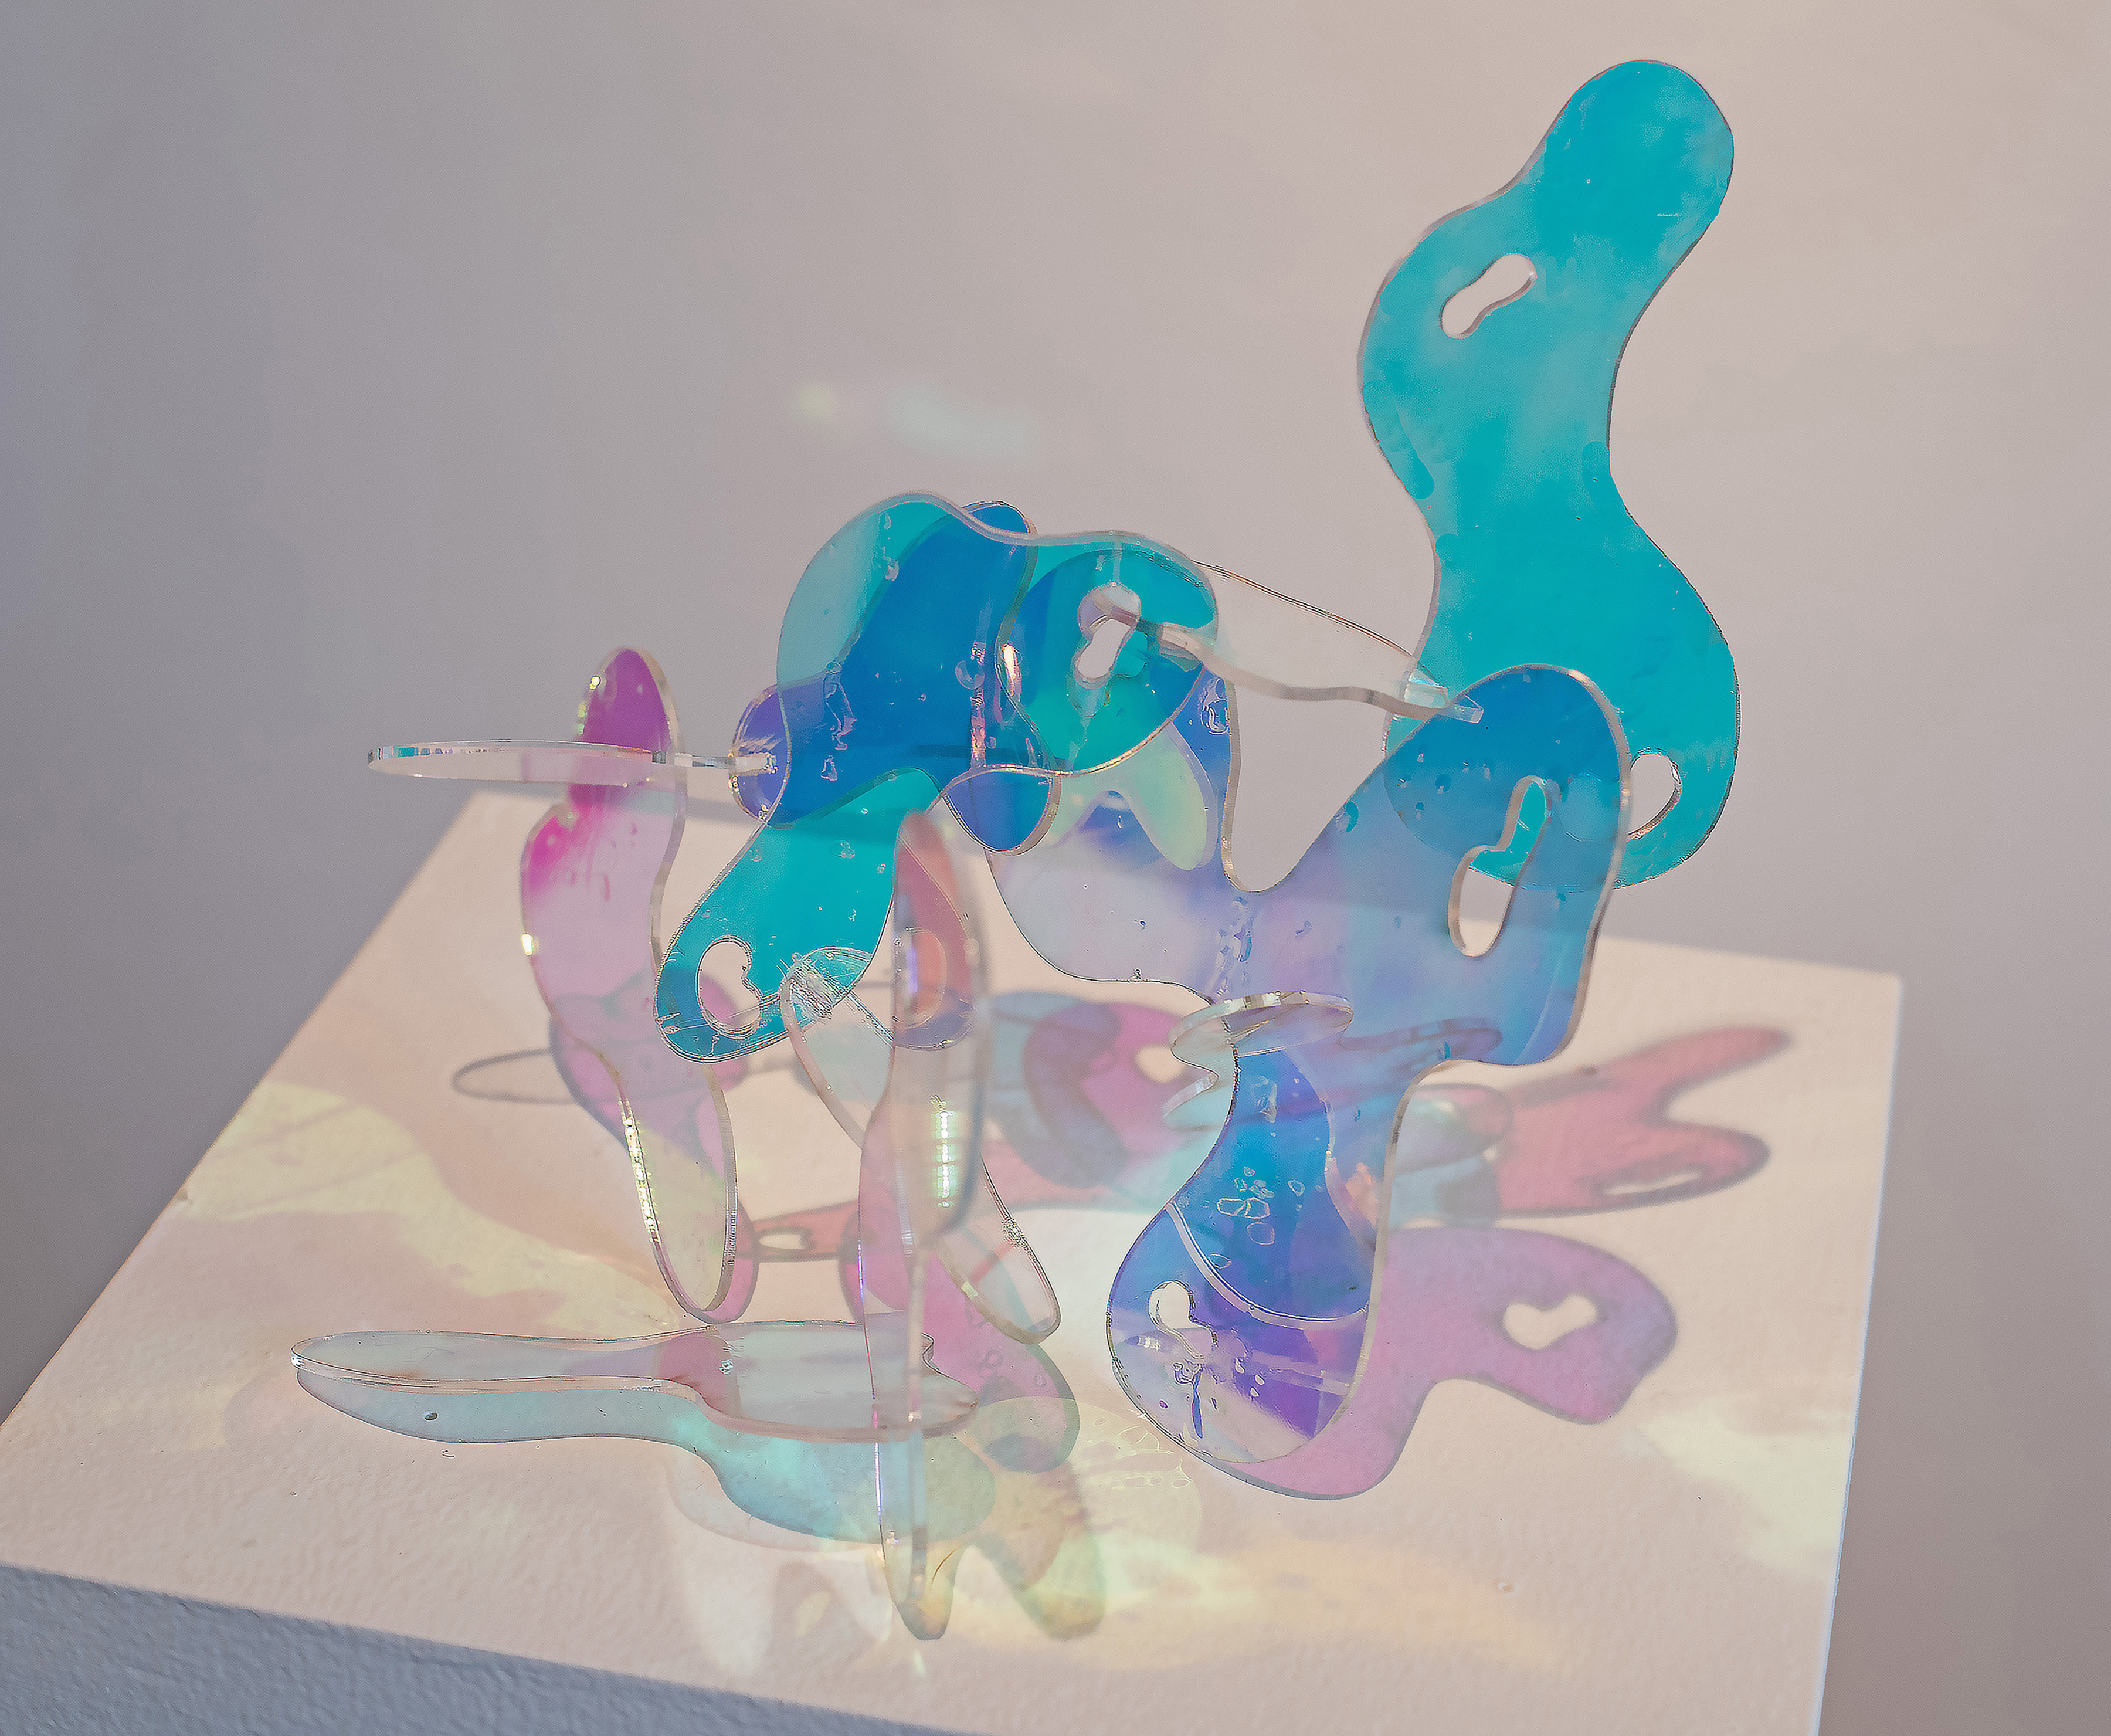 Three-dimensional, laser cut plexi-glass.  It consists of light blue and pink organic shapes.